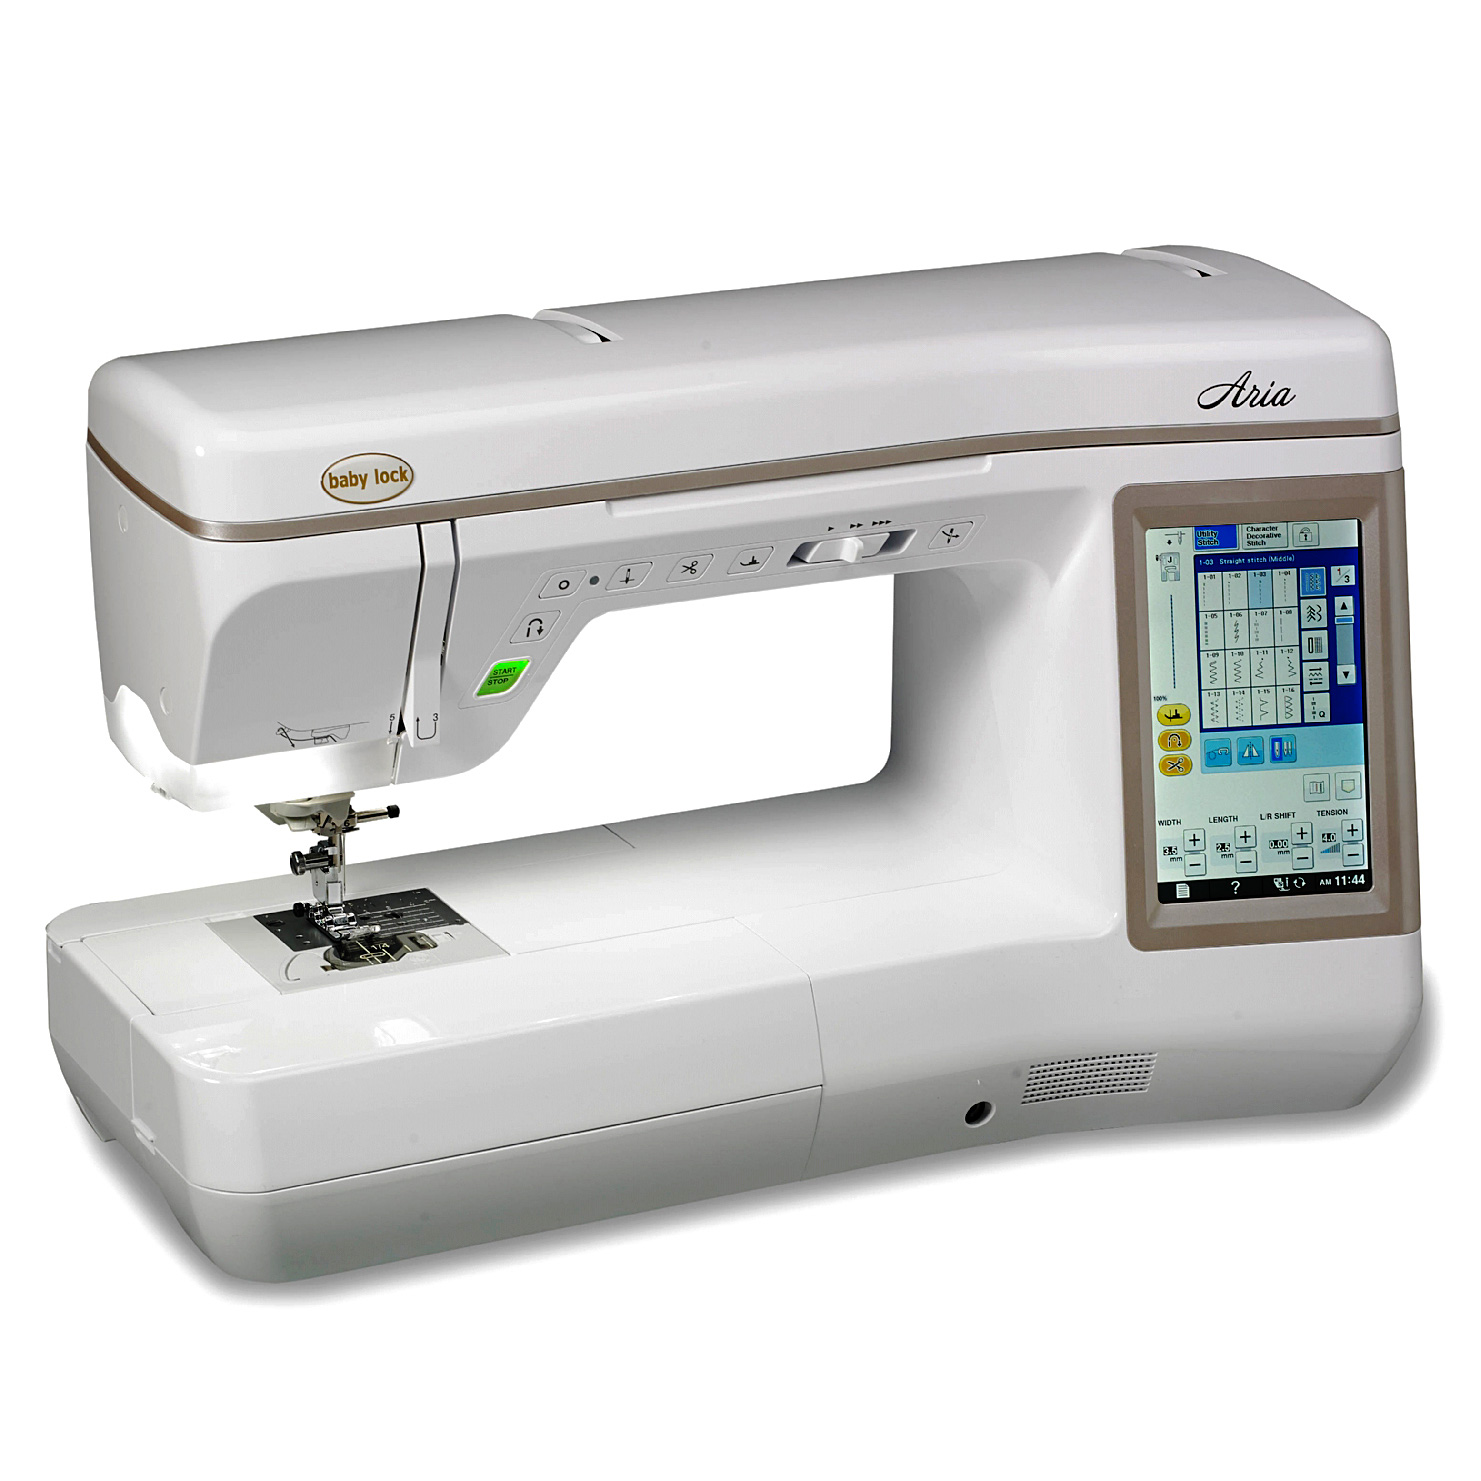 Looking for serger sewing machines and overclocks? We offer a huge collection here at tiospecicin.gq with all the major brands like Singer and Janome.